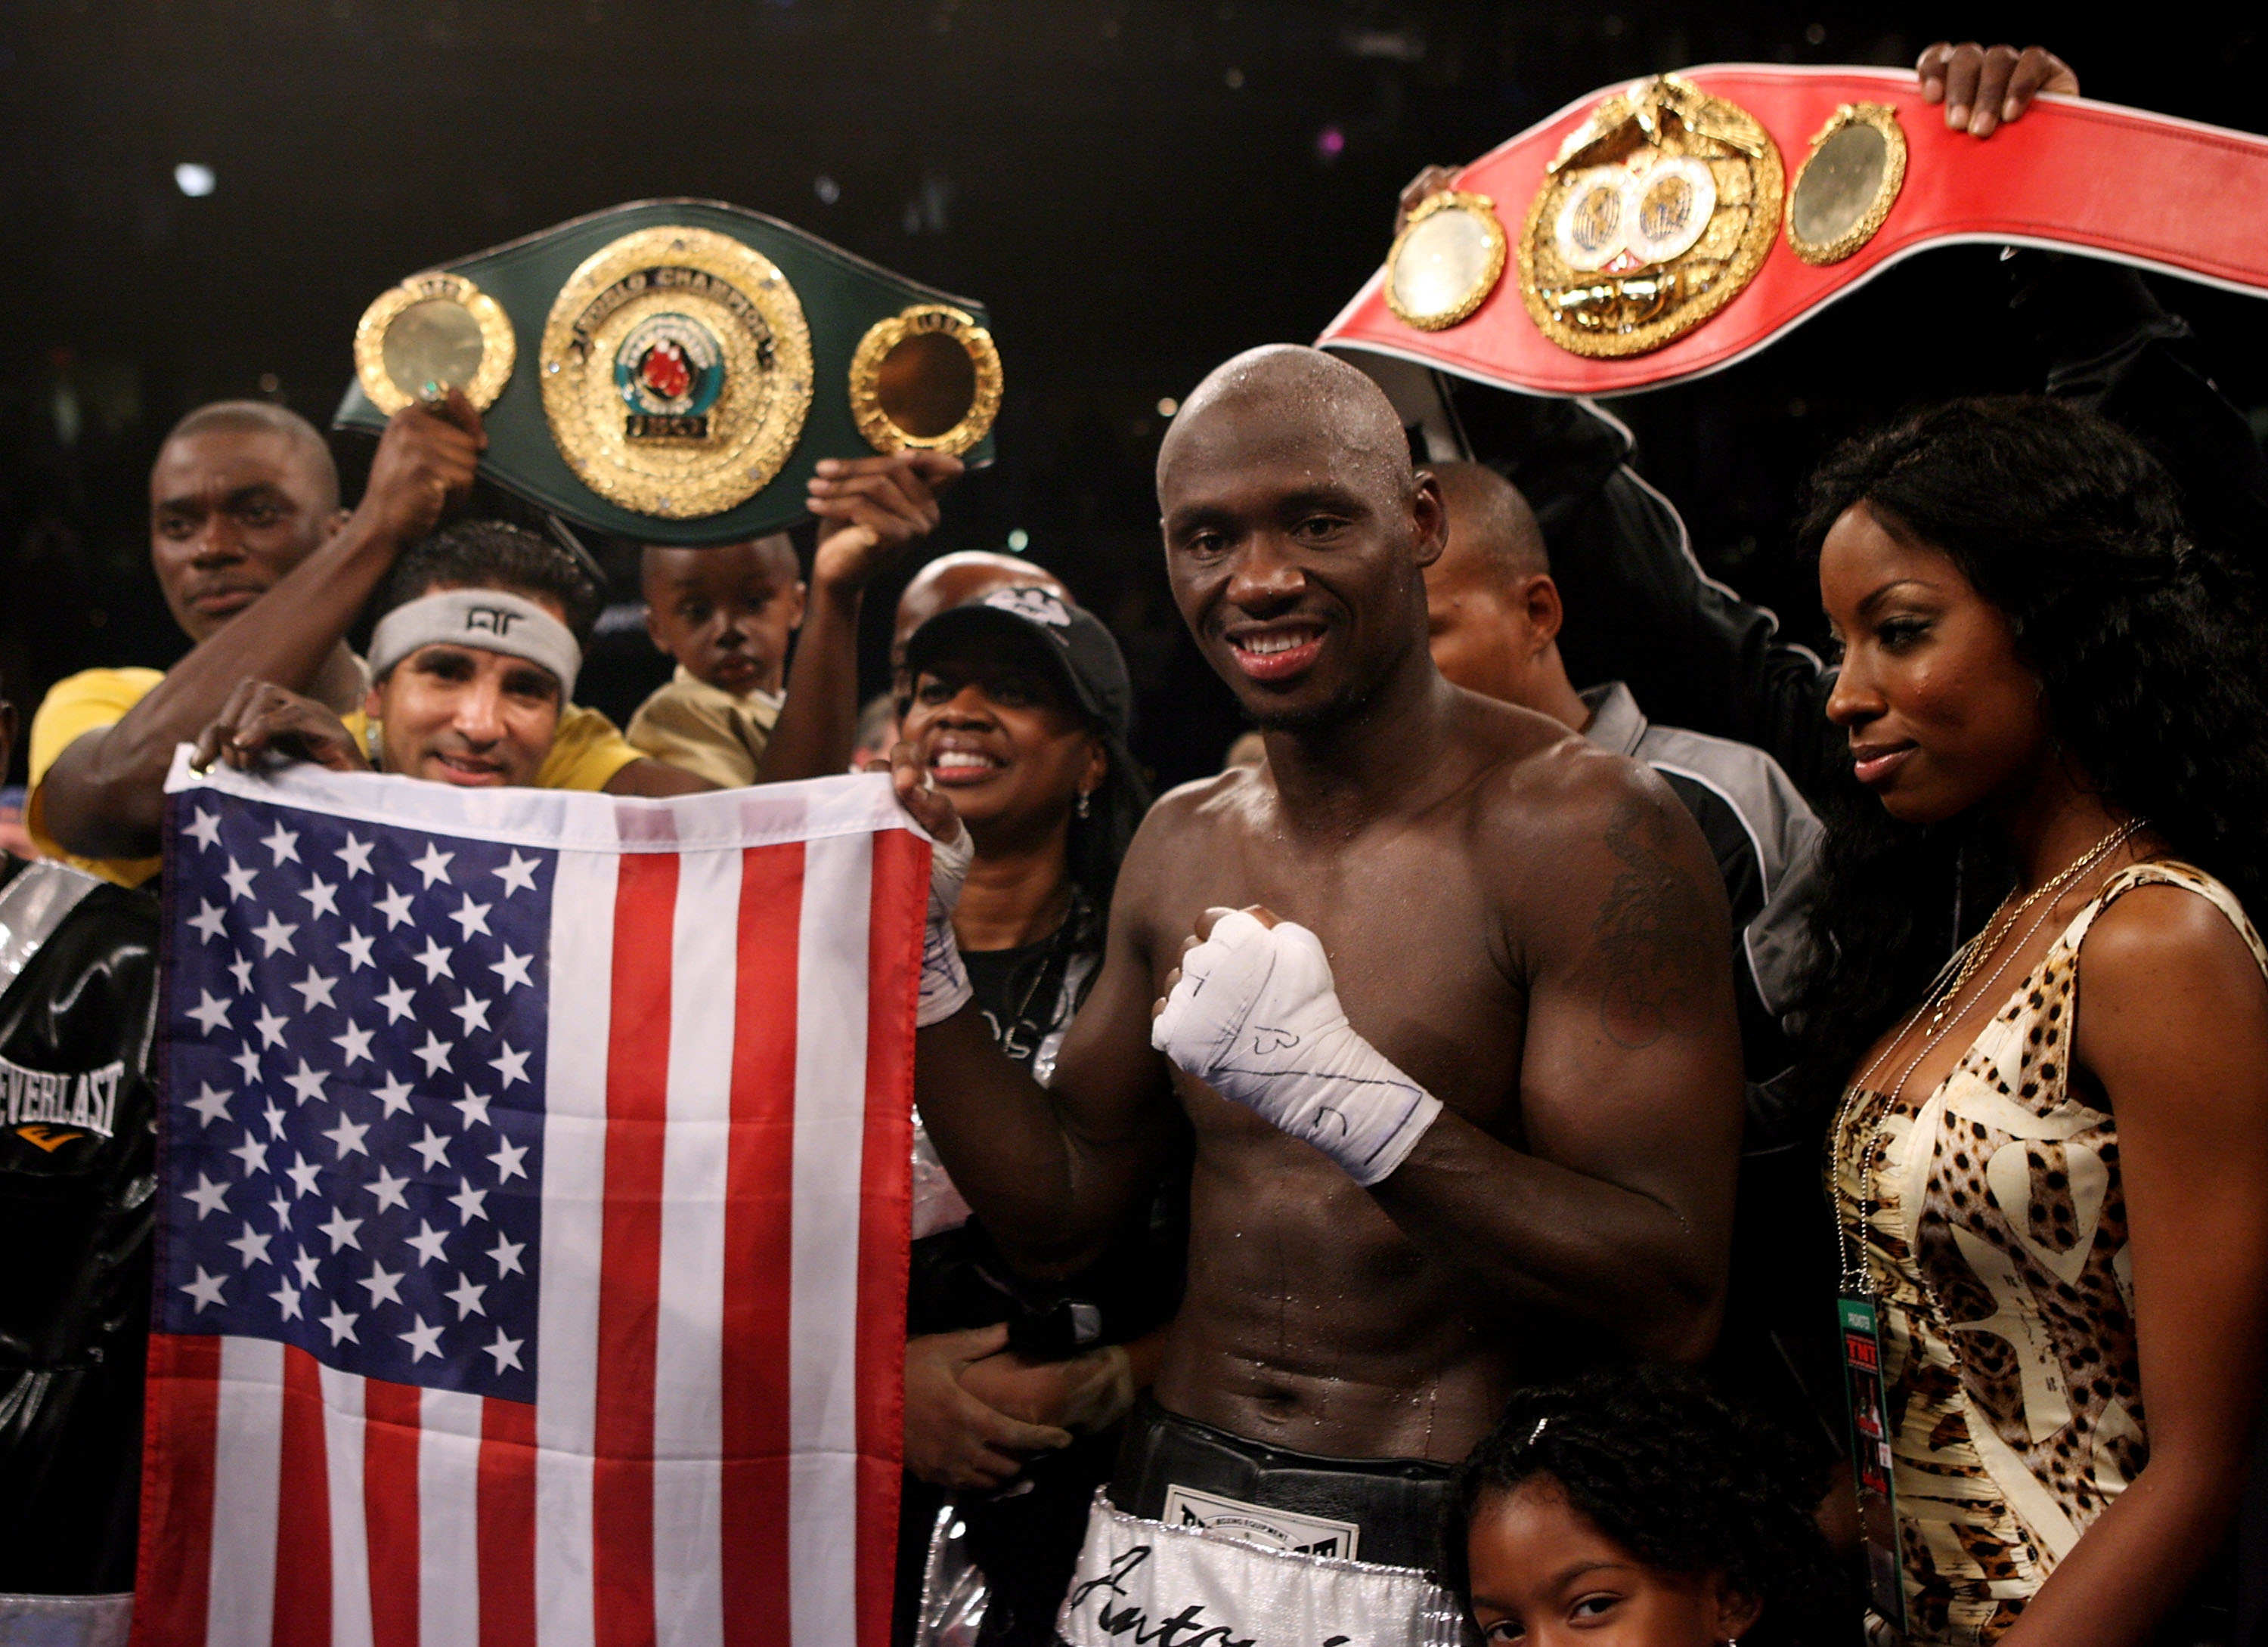 TAMPA, FLORIDA - APRIL 12: Antonio Tarver celebrates beating Clinton Woods during the IBO, IBF light-Heavyweight title fight on April 12, 2008 at the St. Pete Times Forum in Tampa, Florida. (Photo by John Gichigi/Getty Images)